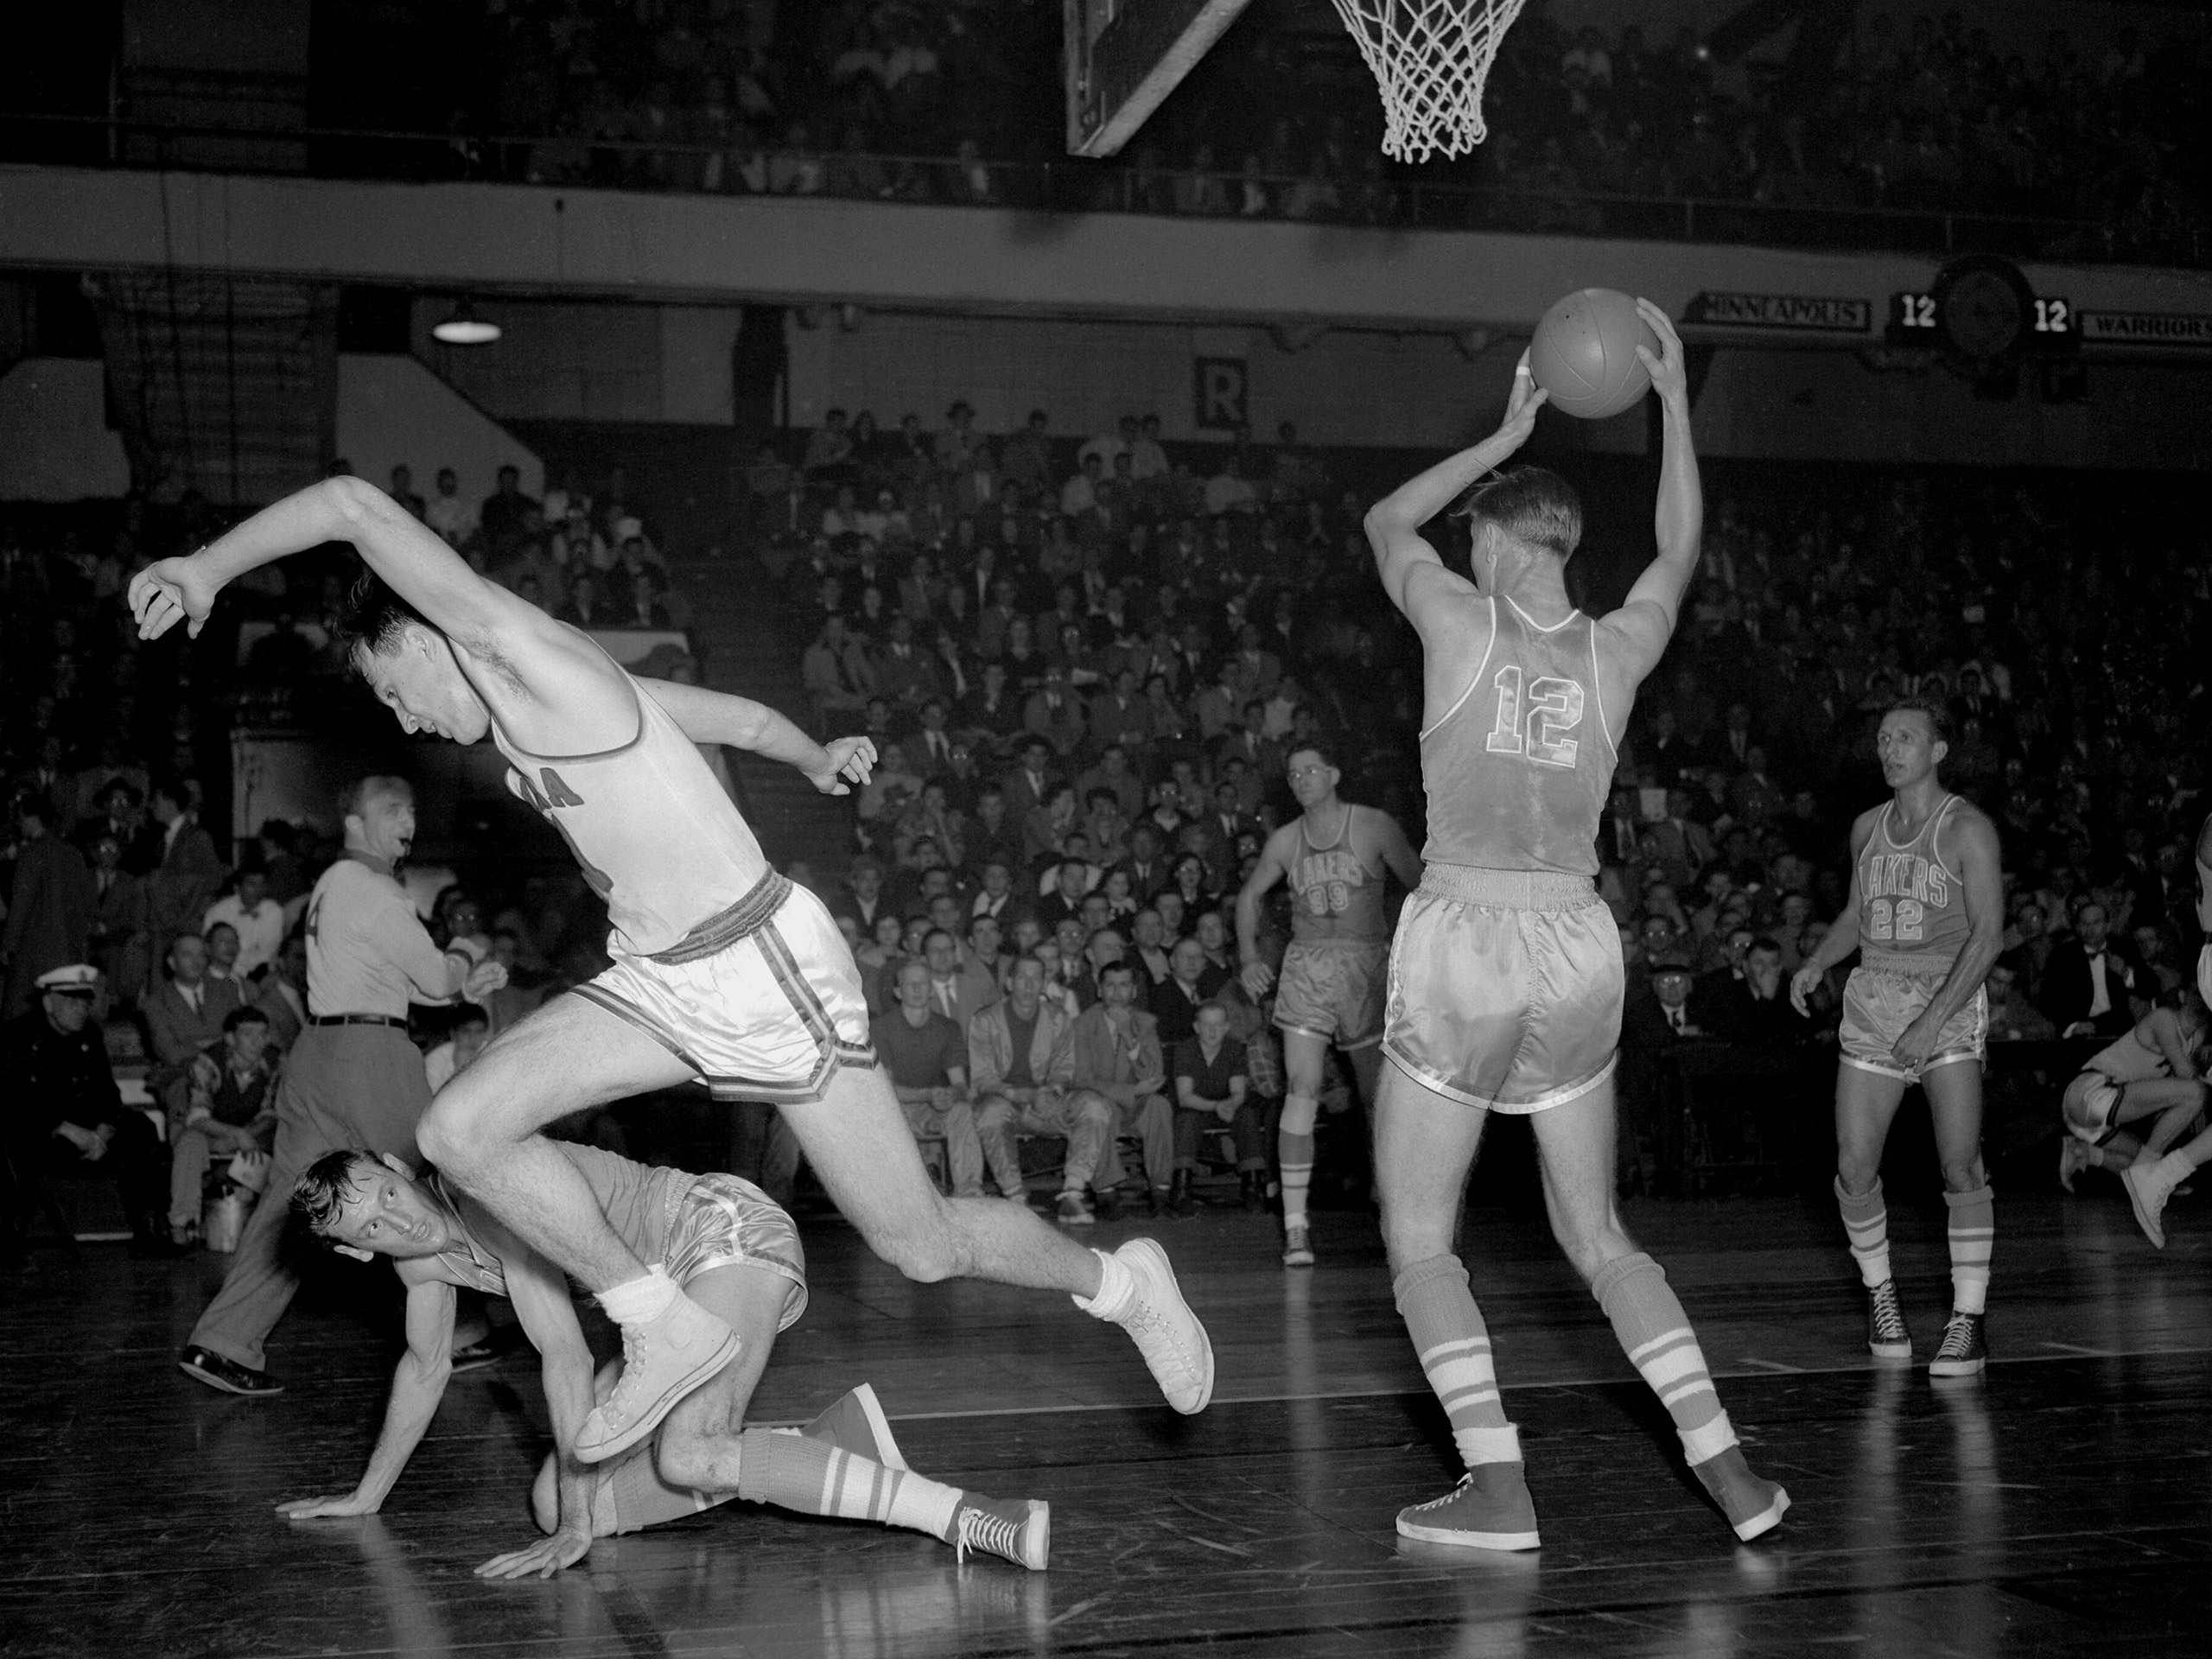 Howie Schultz #12 of the Minneapolis Lakers rebounds against the Philadelphia Warriors on Dec. 21, 1951 at the Philadelphia Civic Center in Philadelphia.